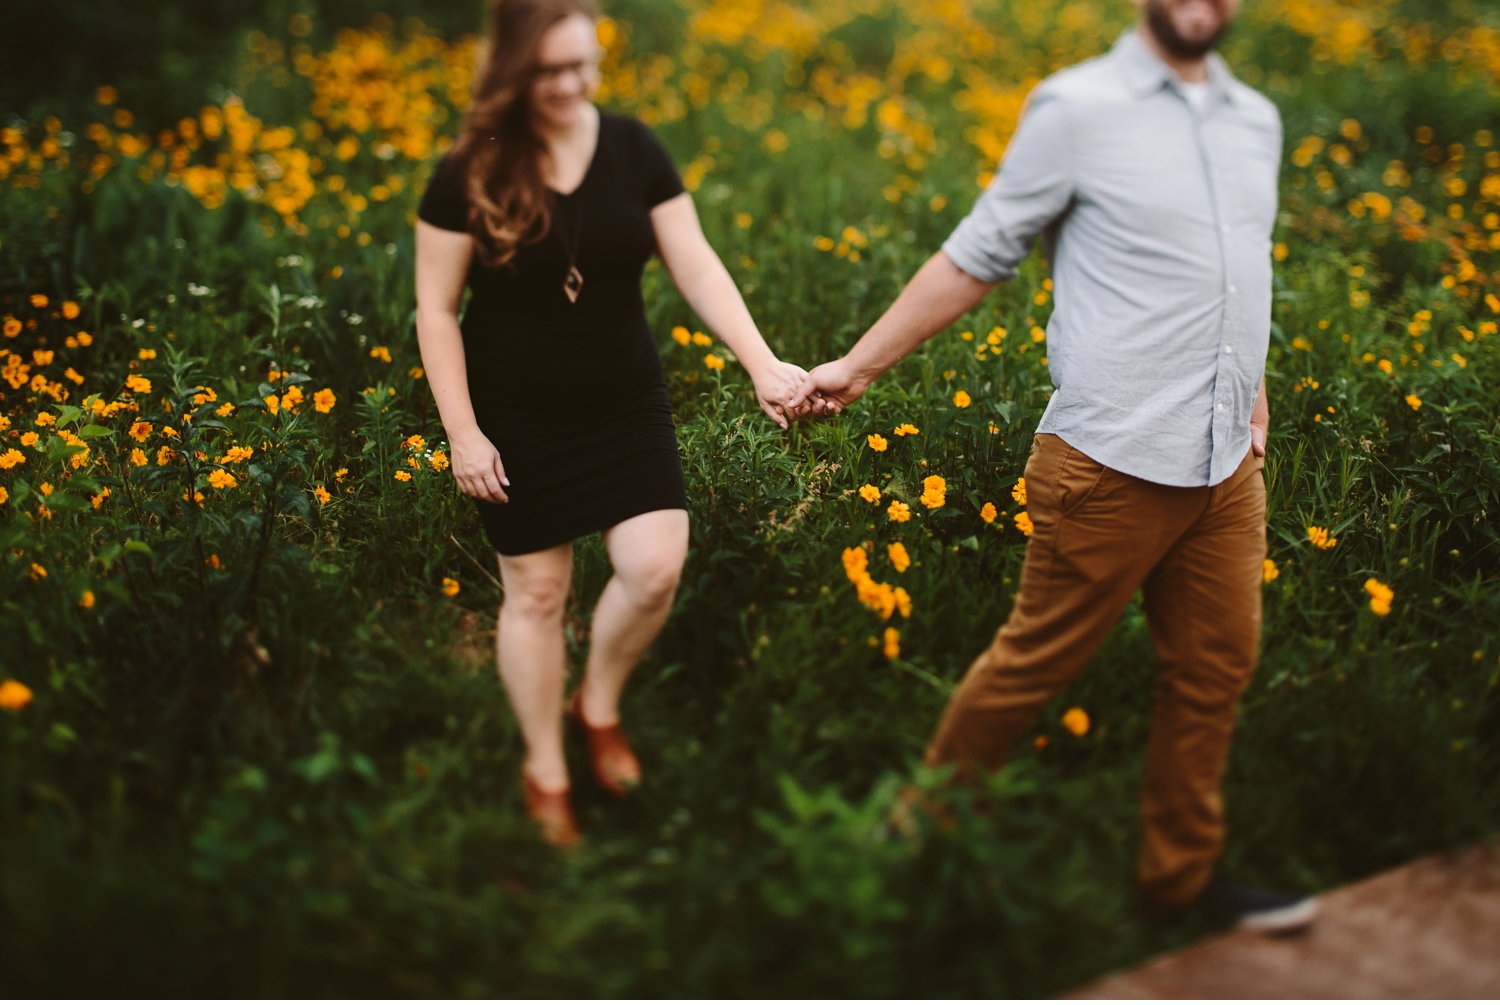 grand rapids floral field engagement